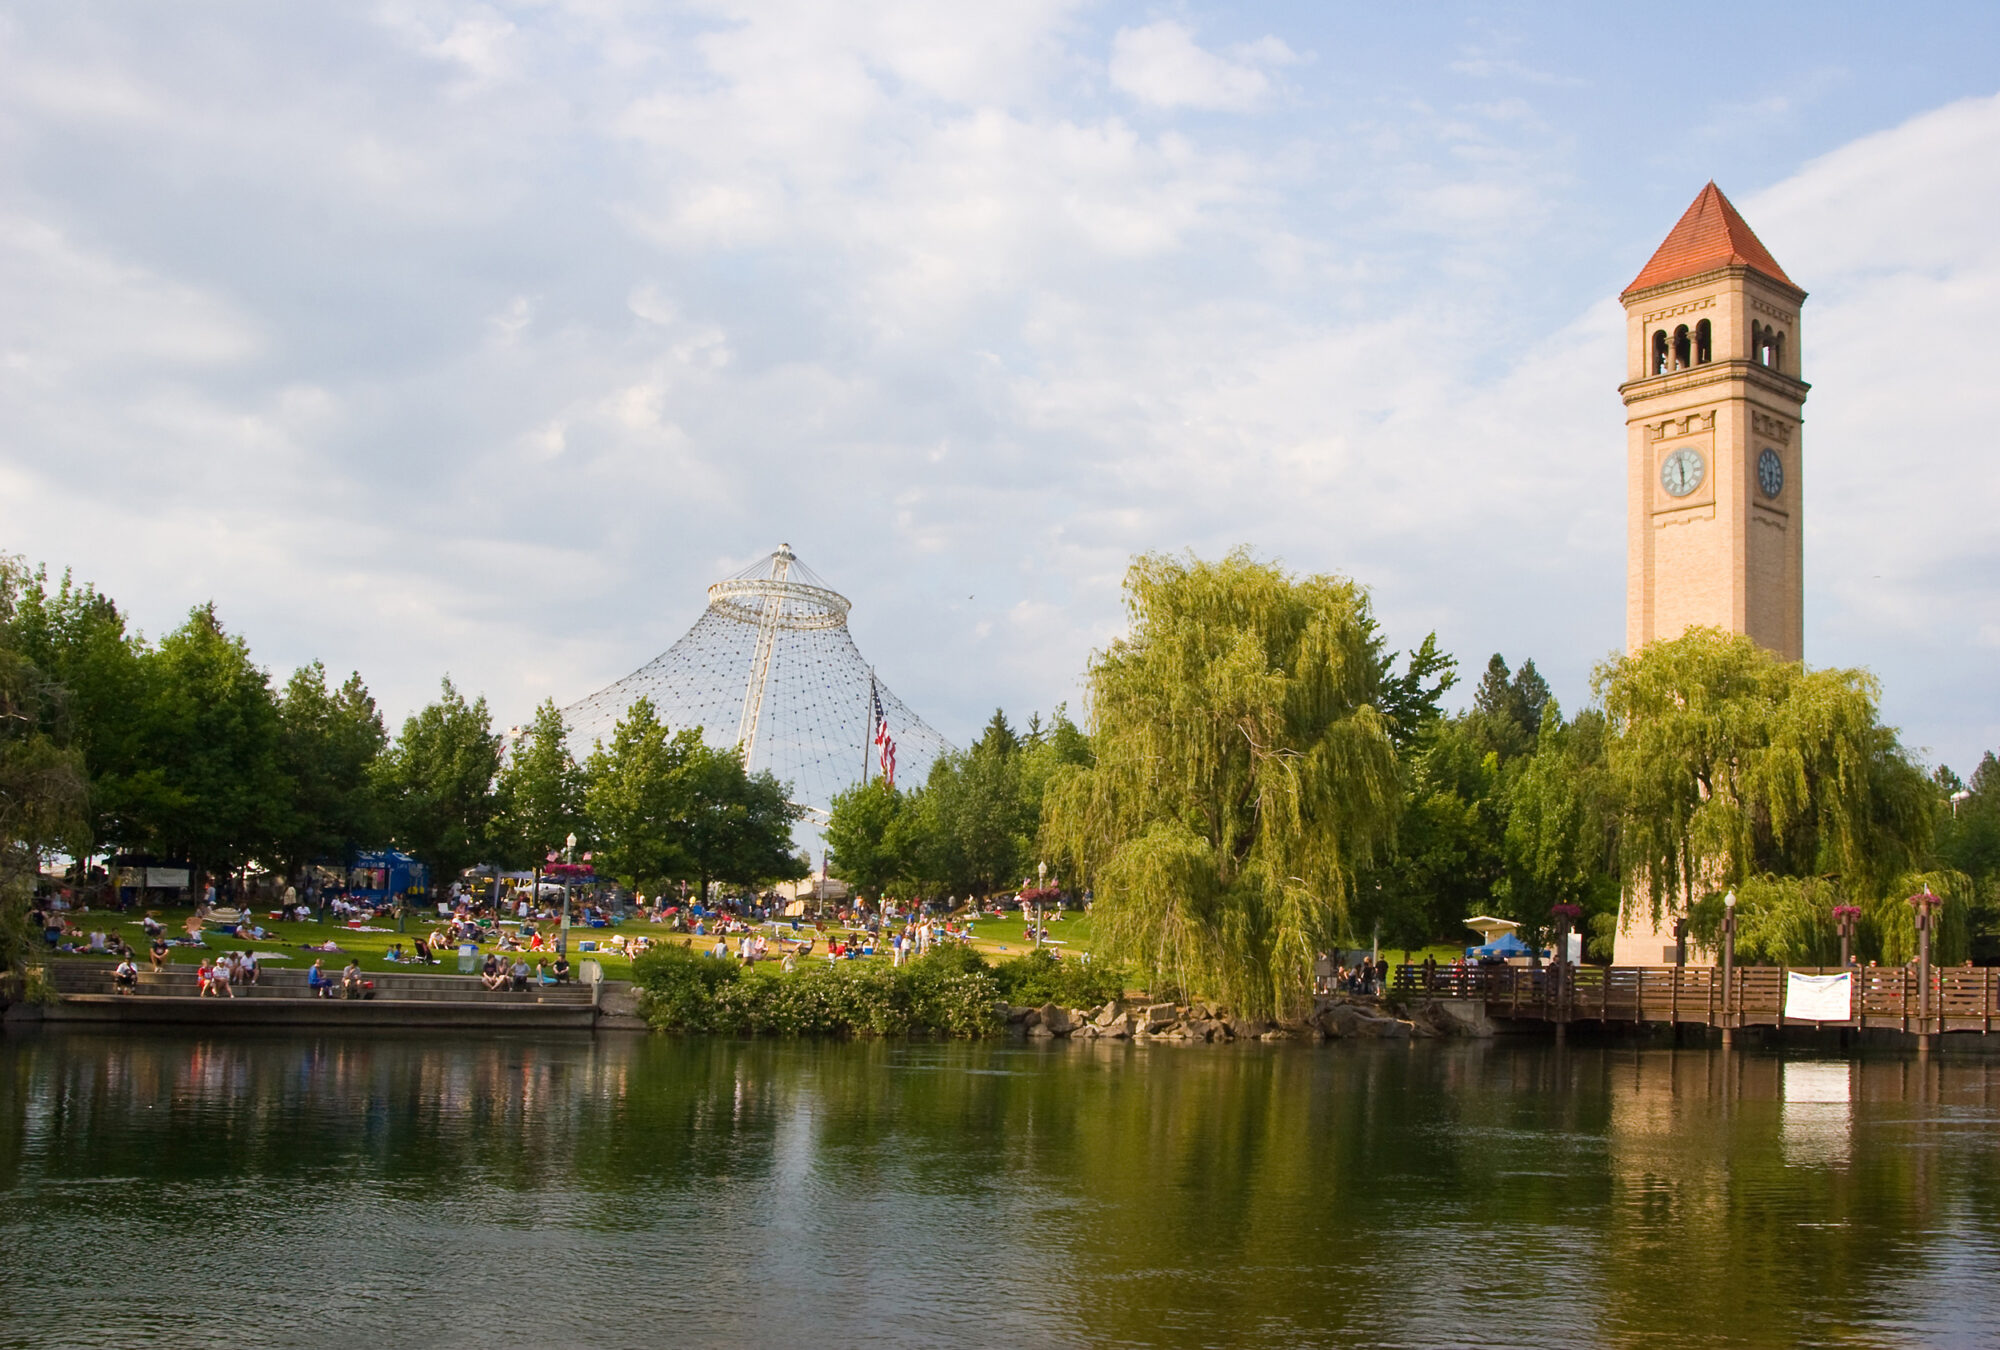 Downtown Spokane Clocktower and Pavilion during event